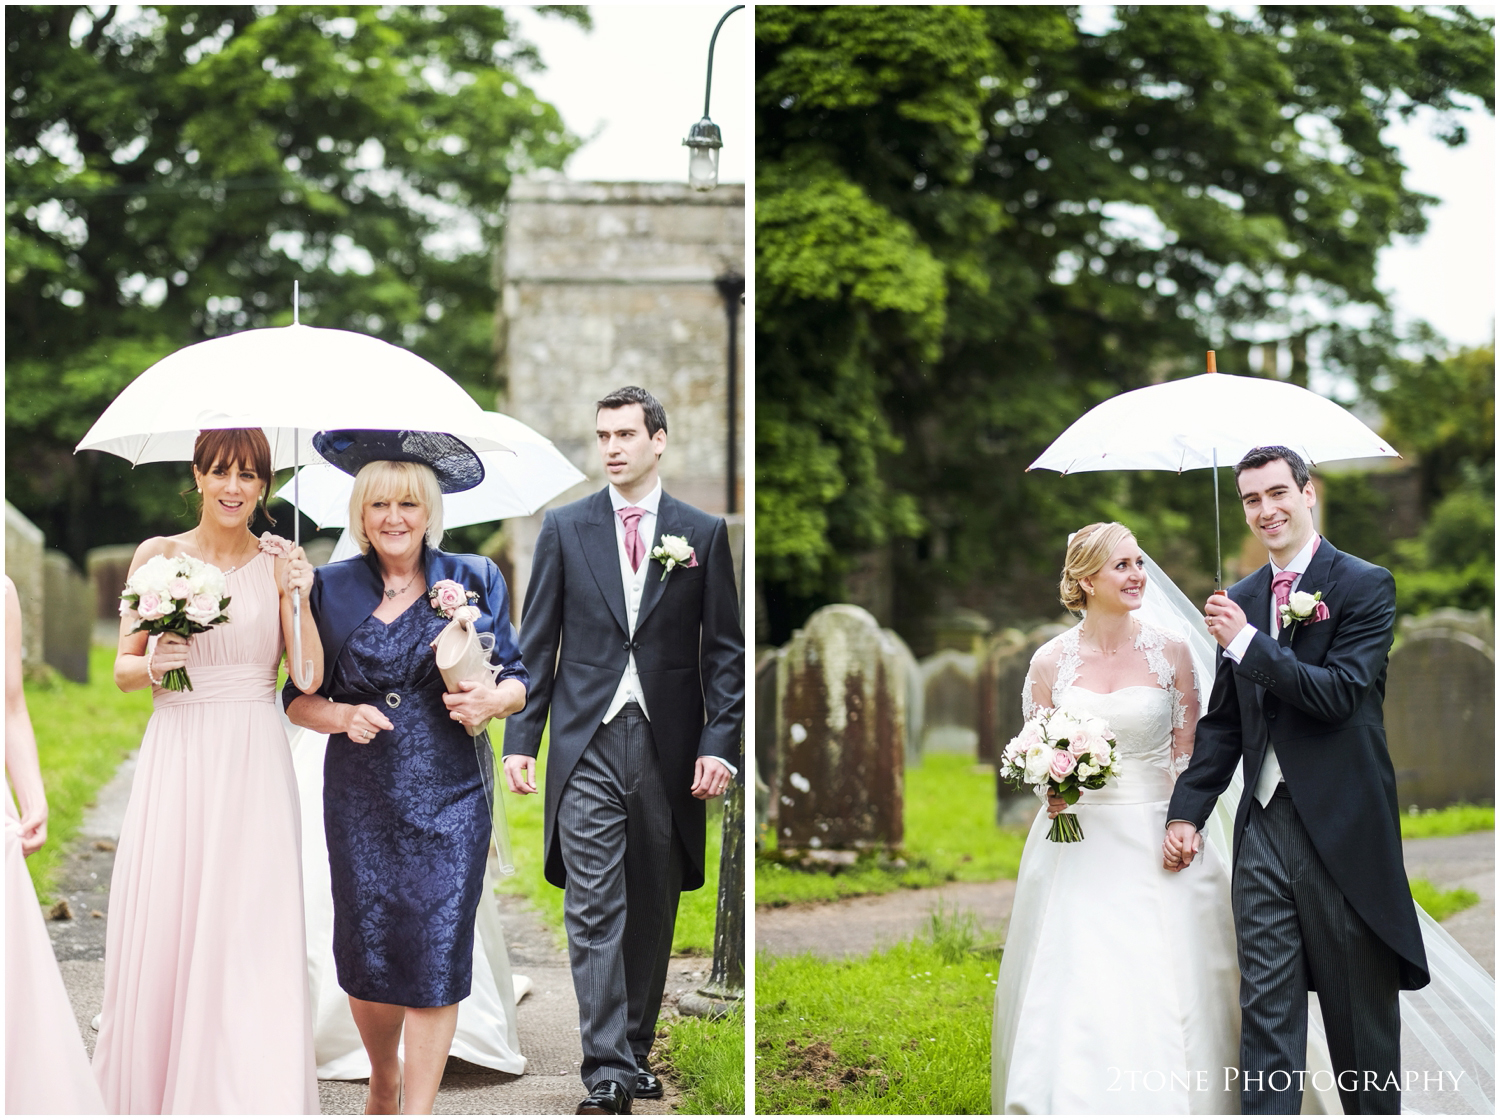 The rain begins again and so time to head off to Doxford Hall for their wedding reception.